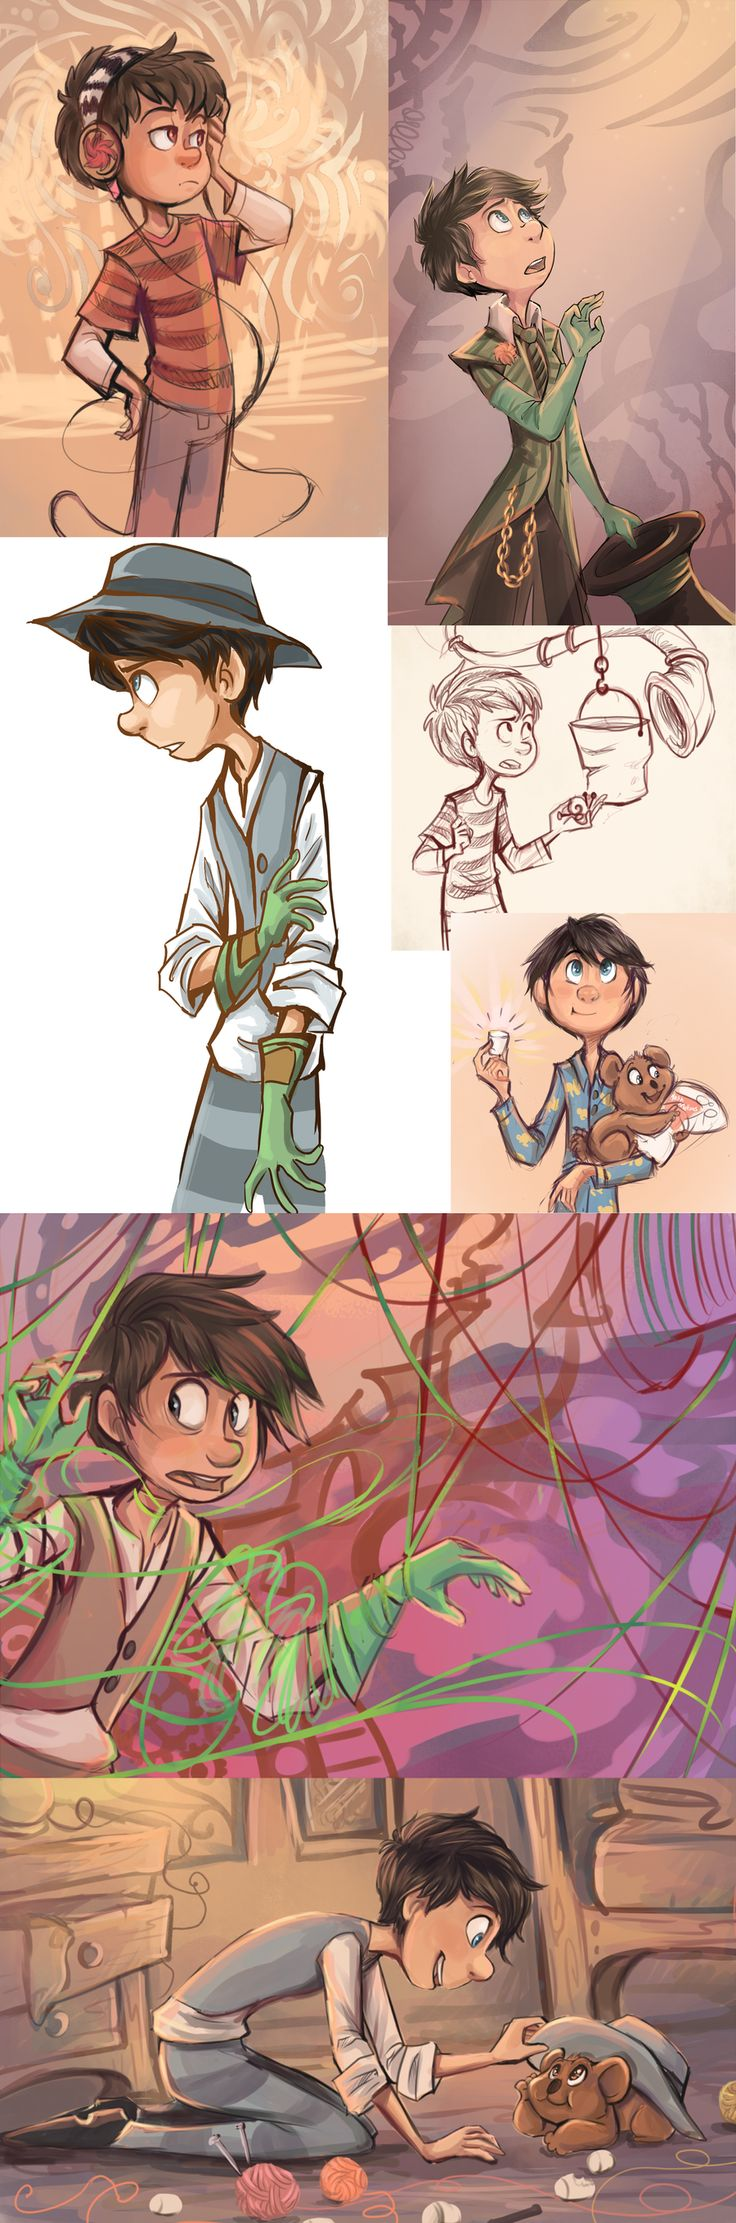 Once-ler and Ted Stuff by sharpie91.deviantart.com - The Lorax #fanart